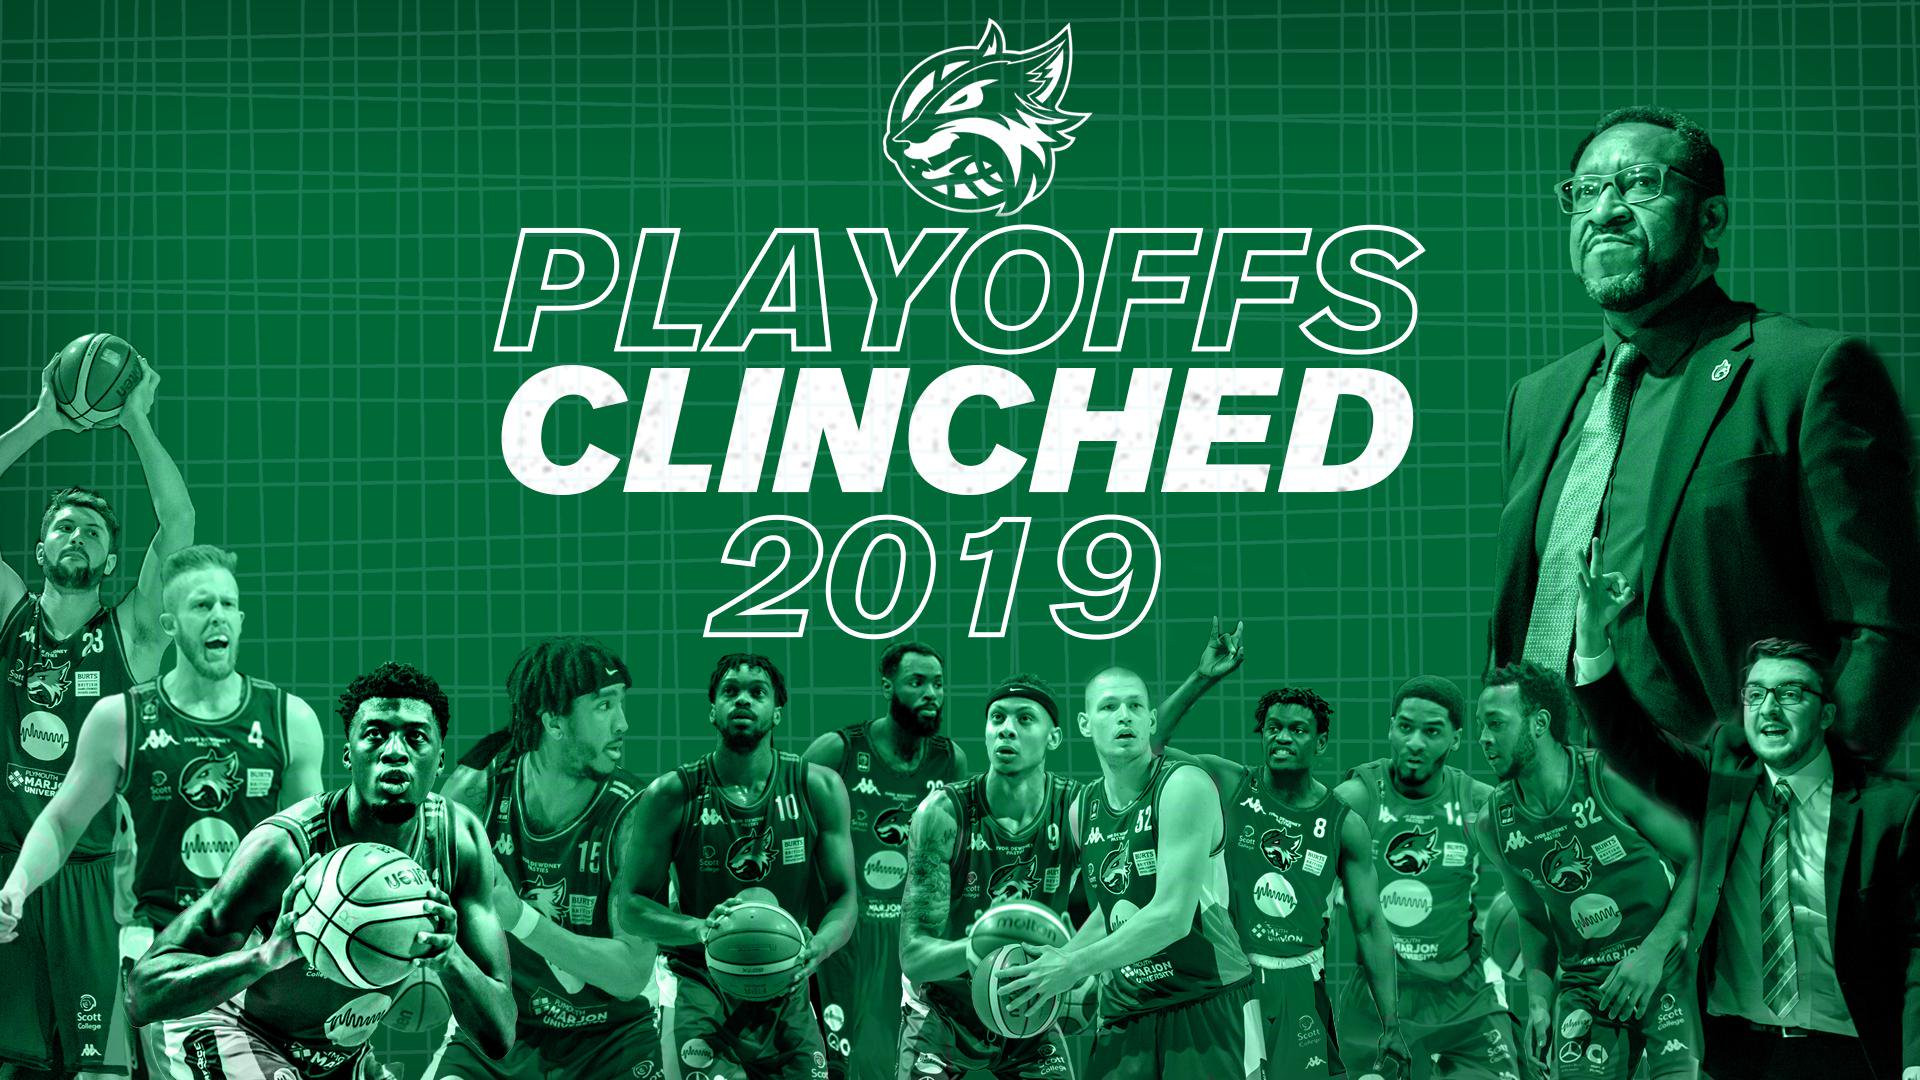 Playoffs Clinched